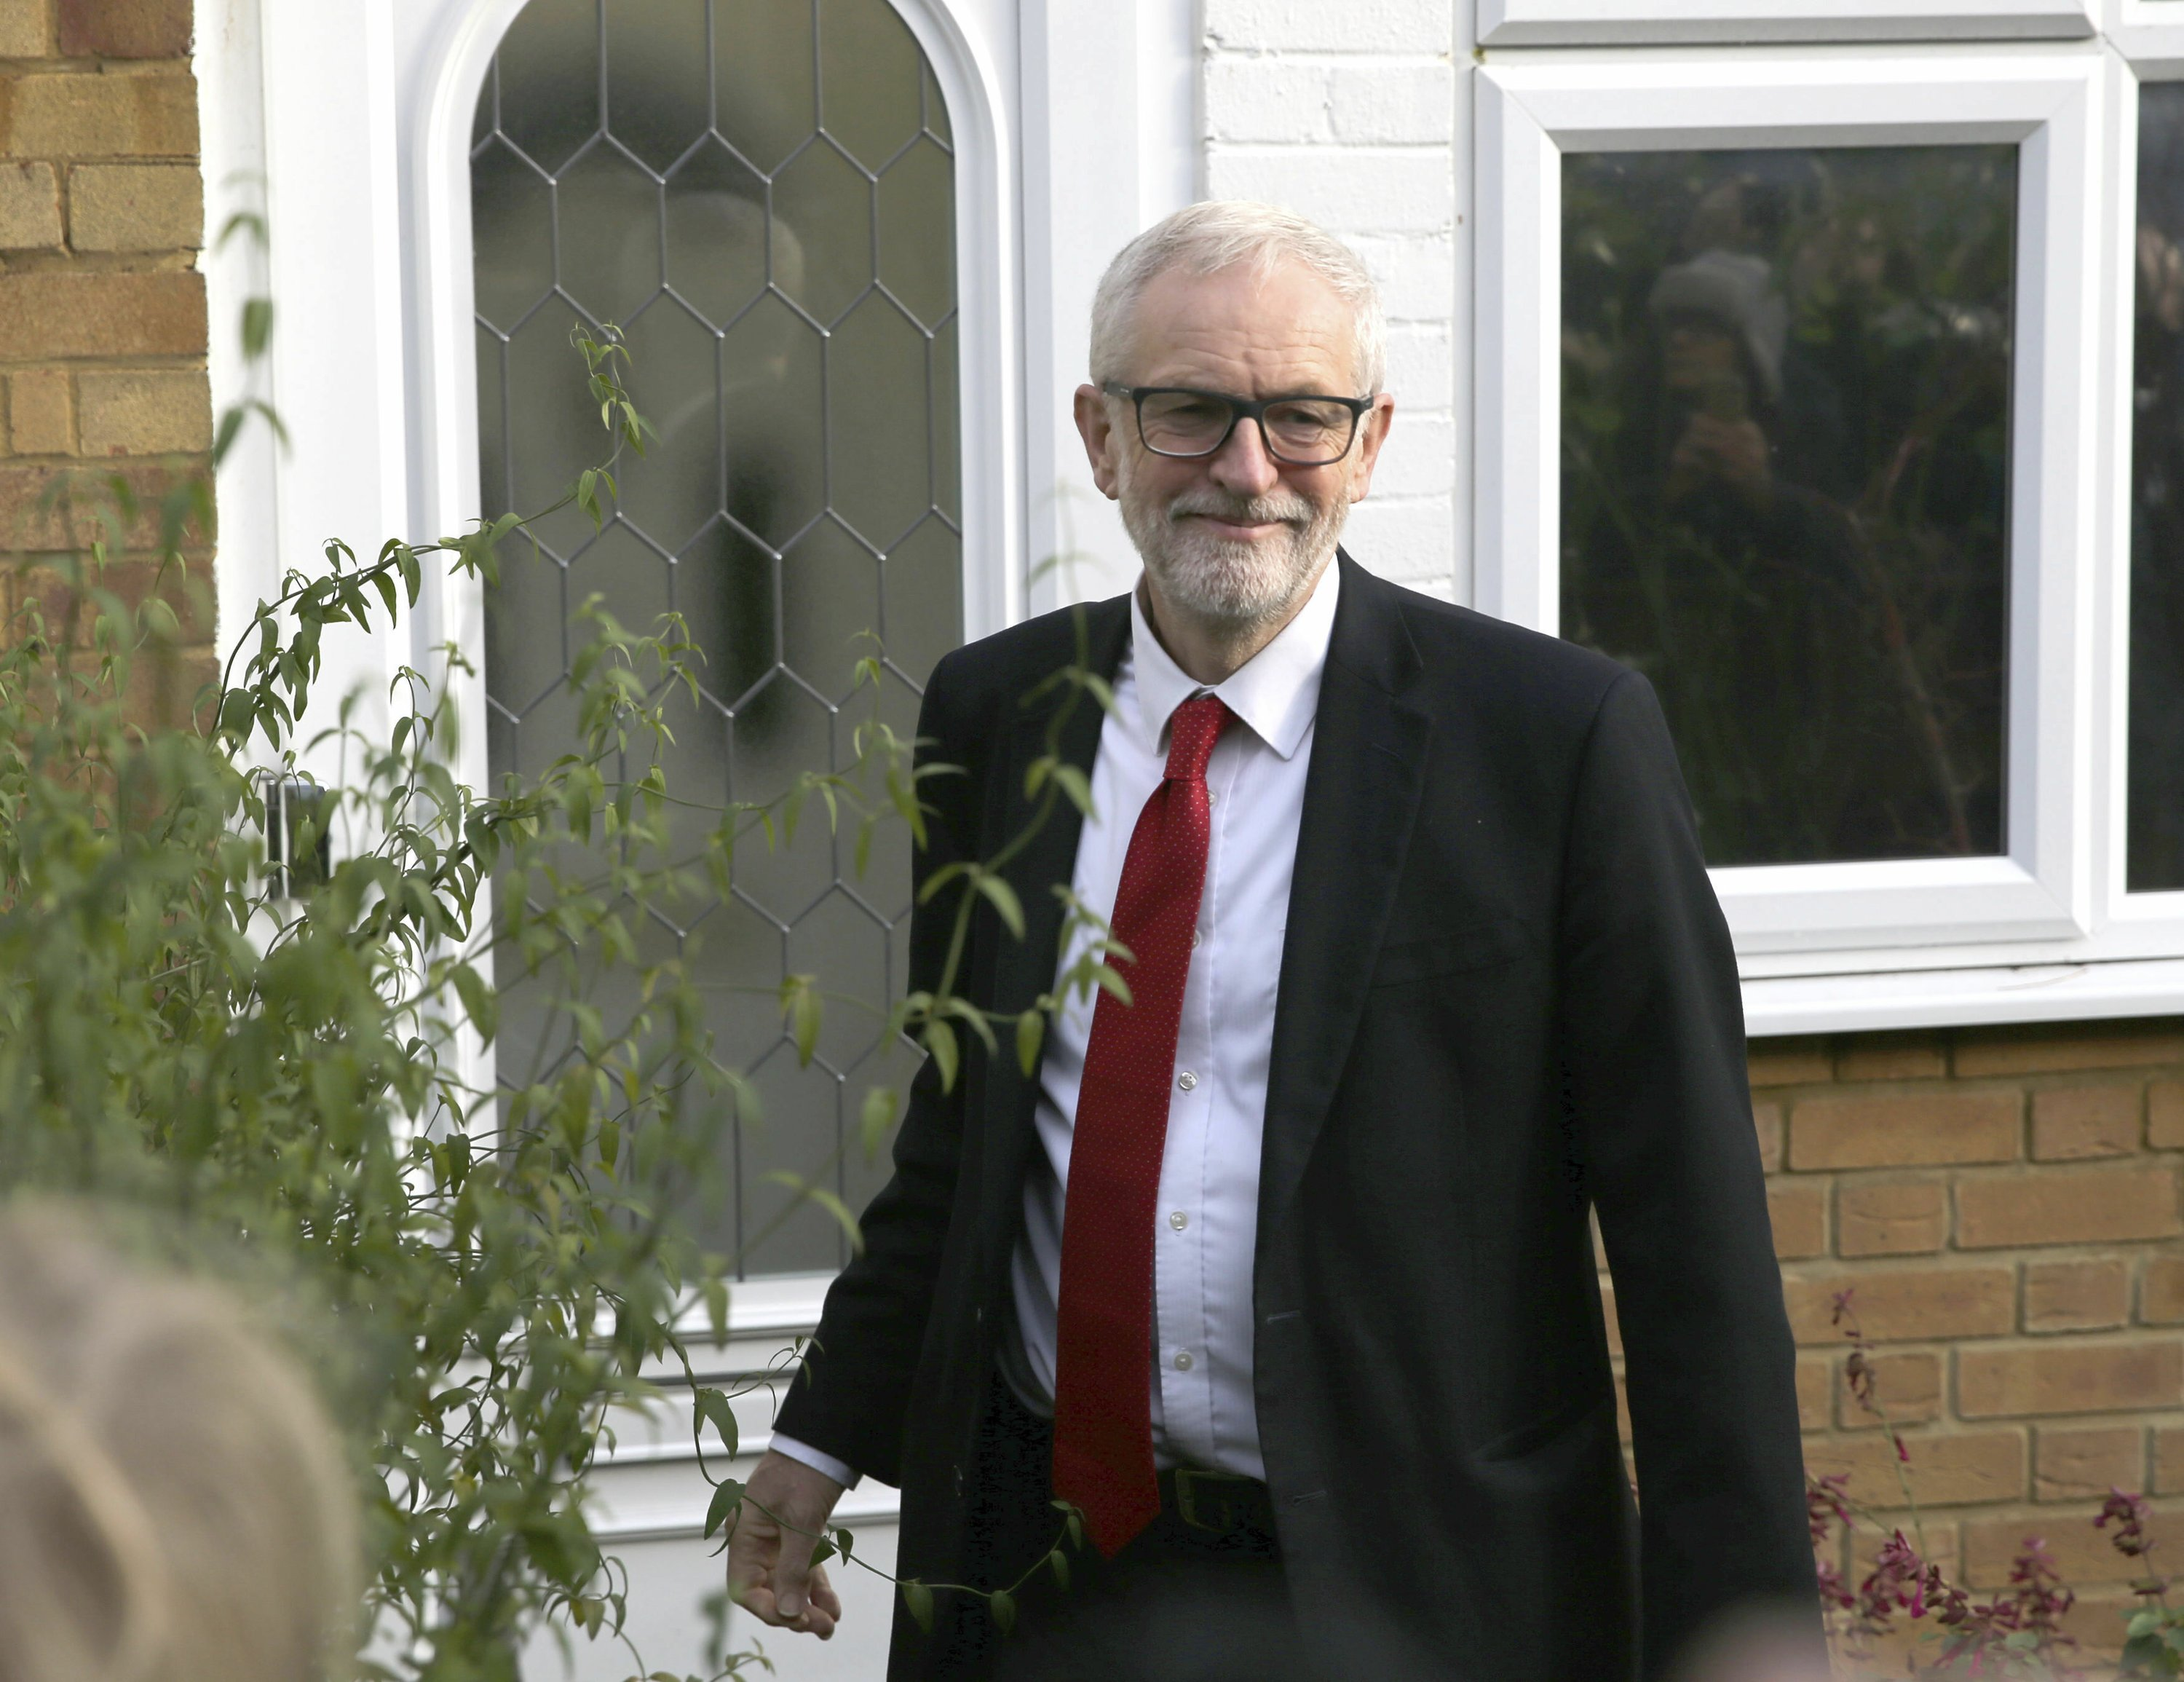 Losing Grimsby: Working-class towns desert UK's Labour Party